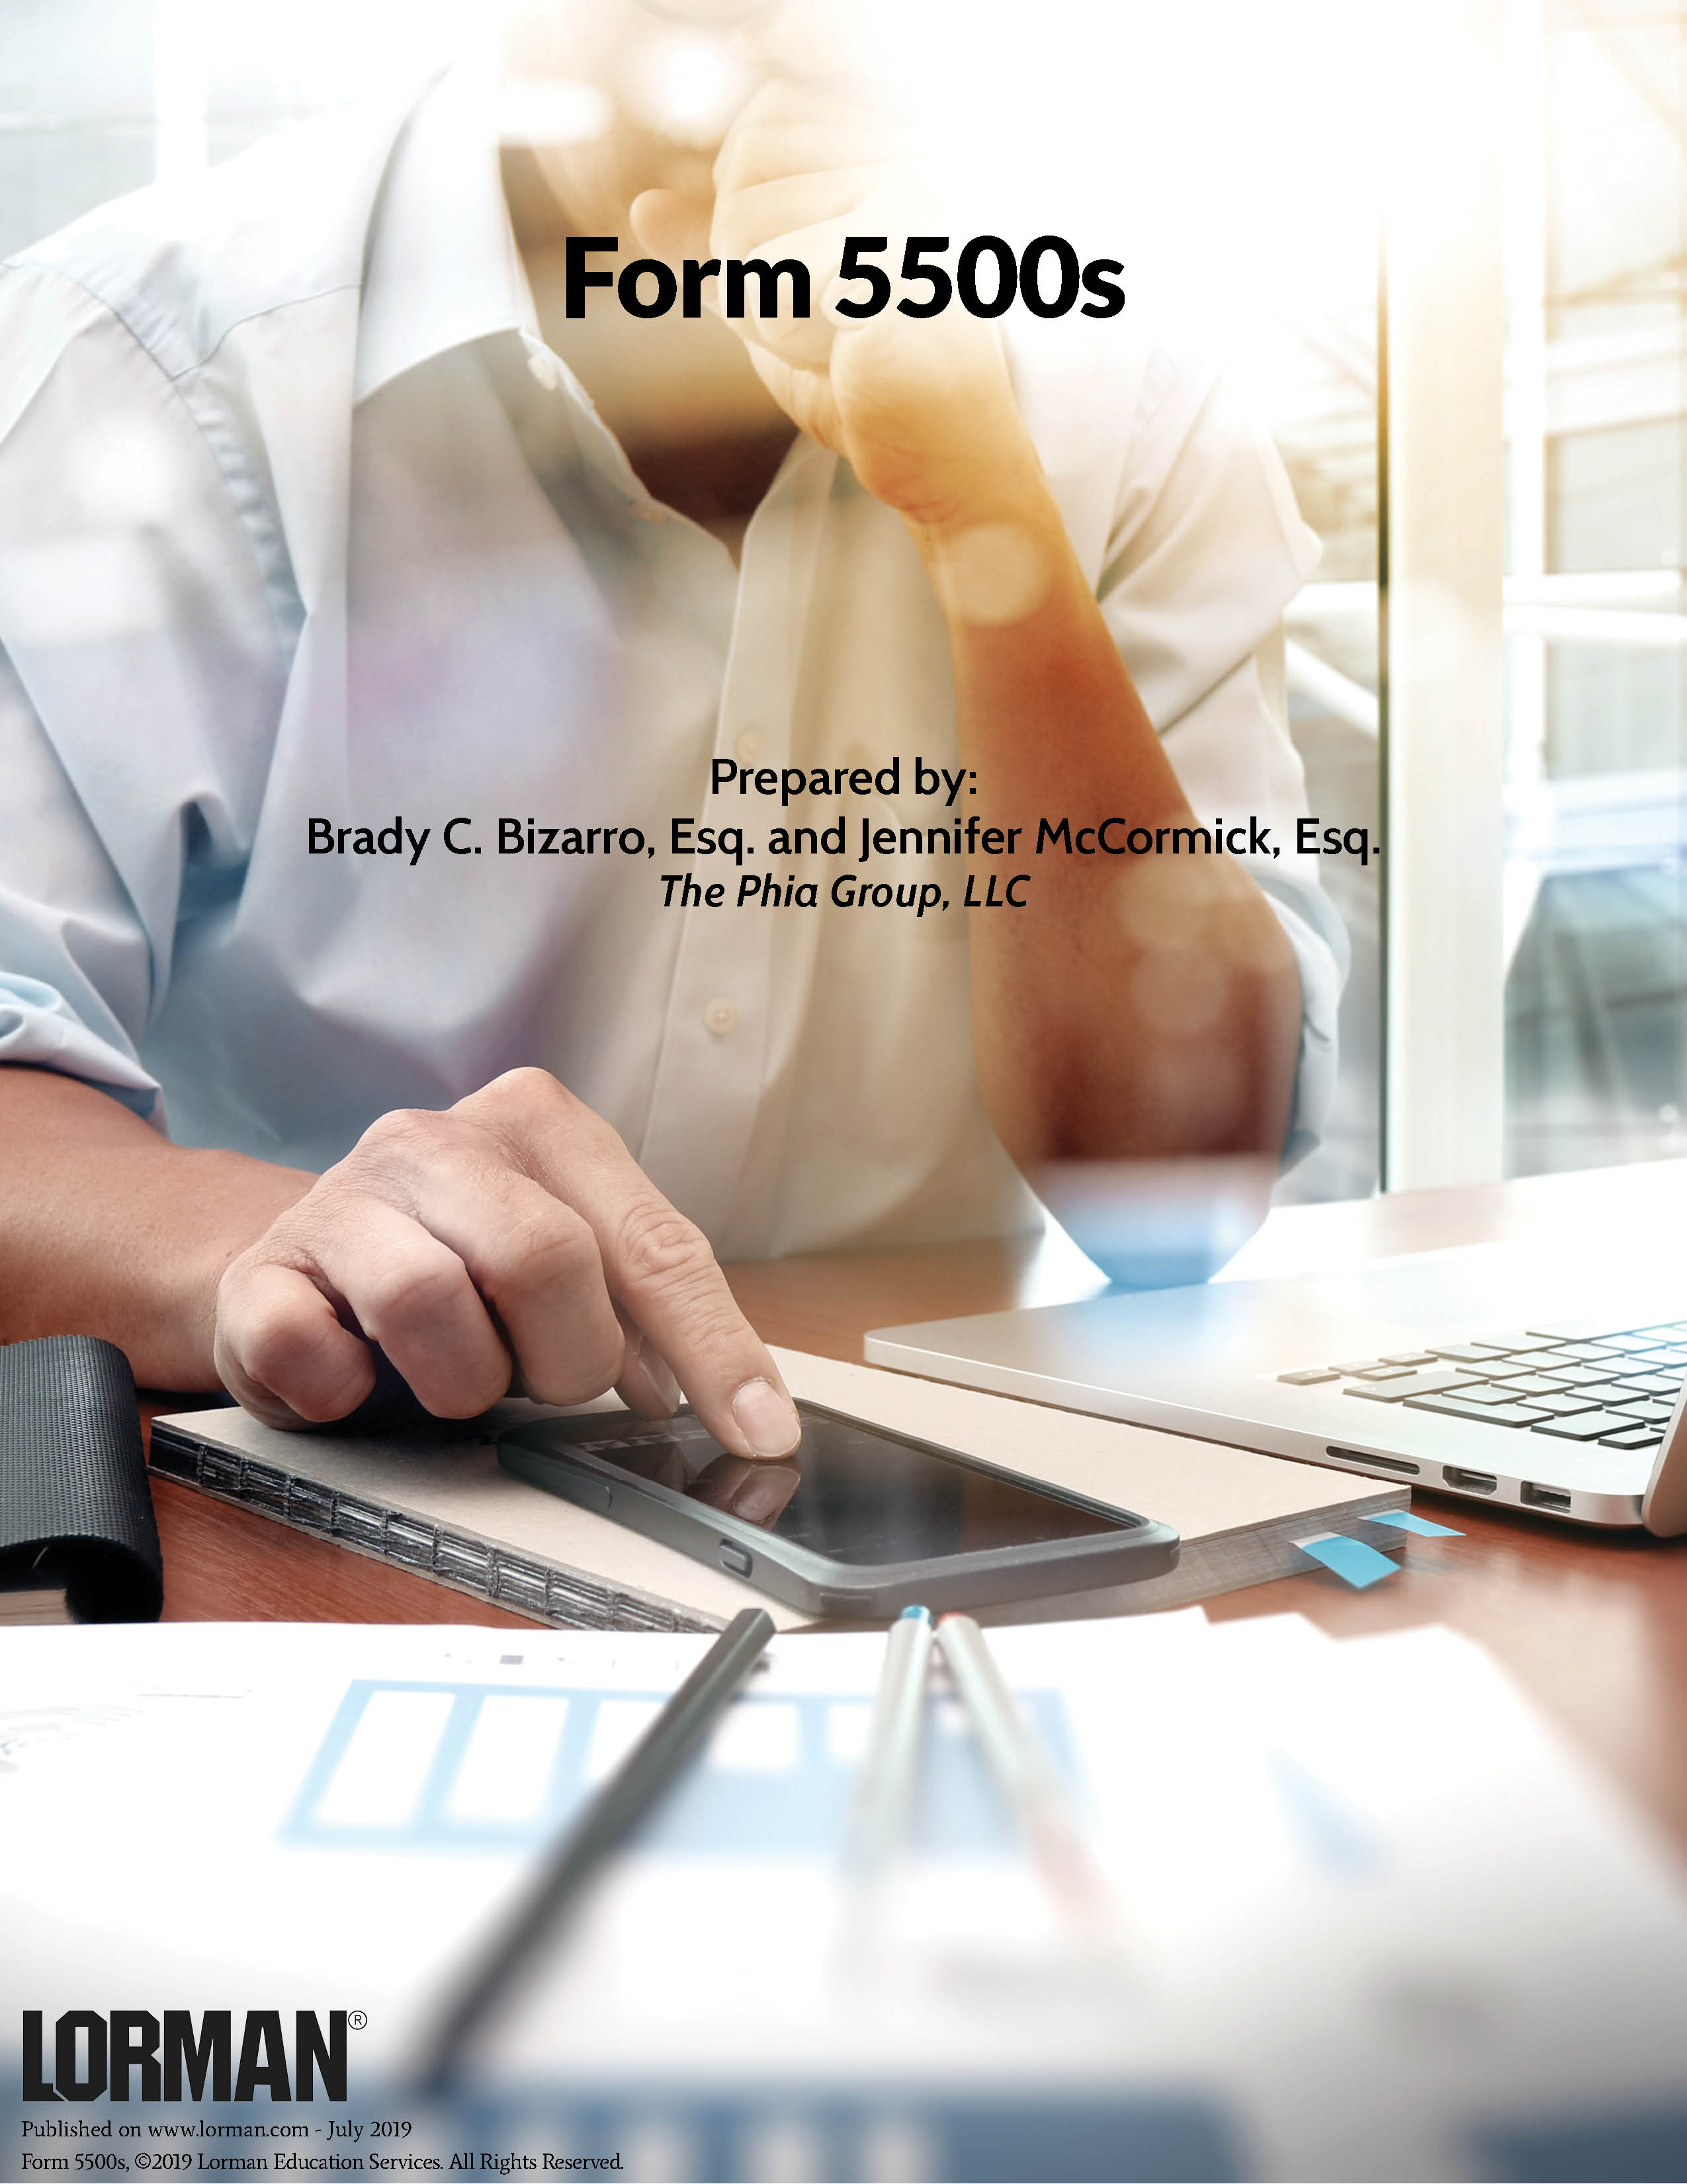 Form 5500s